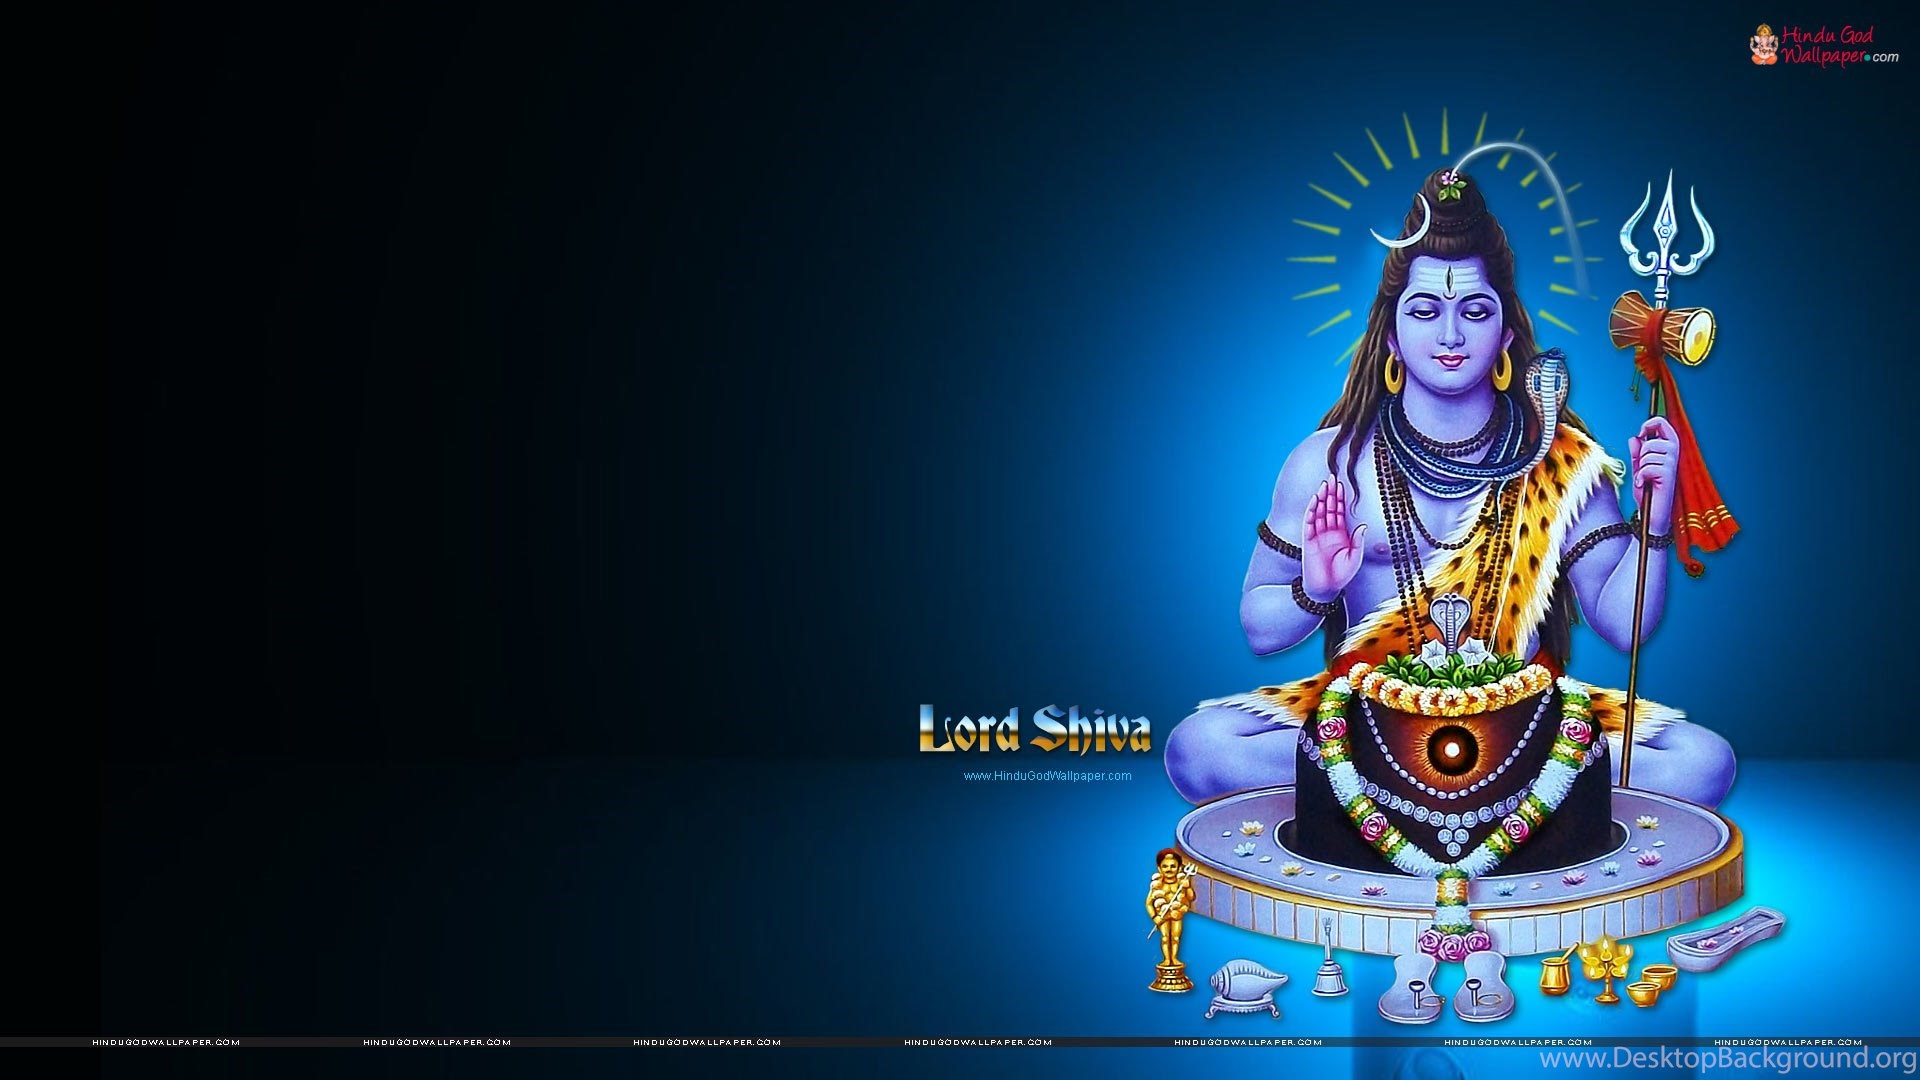 Lord Shiva Desktop Wallpapers Hd: Lord Shiva HD Wallpapers 1080p Download Desktop Background